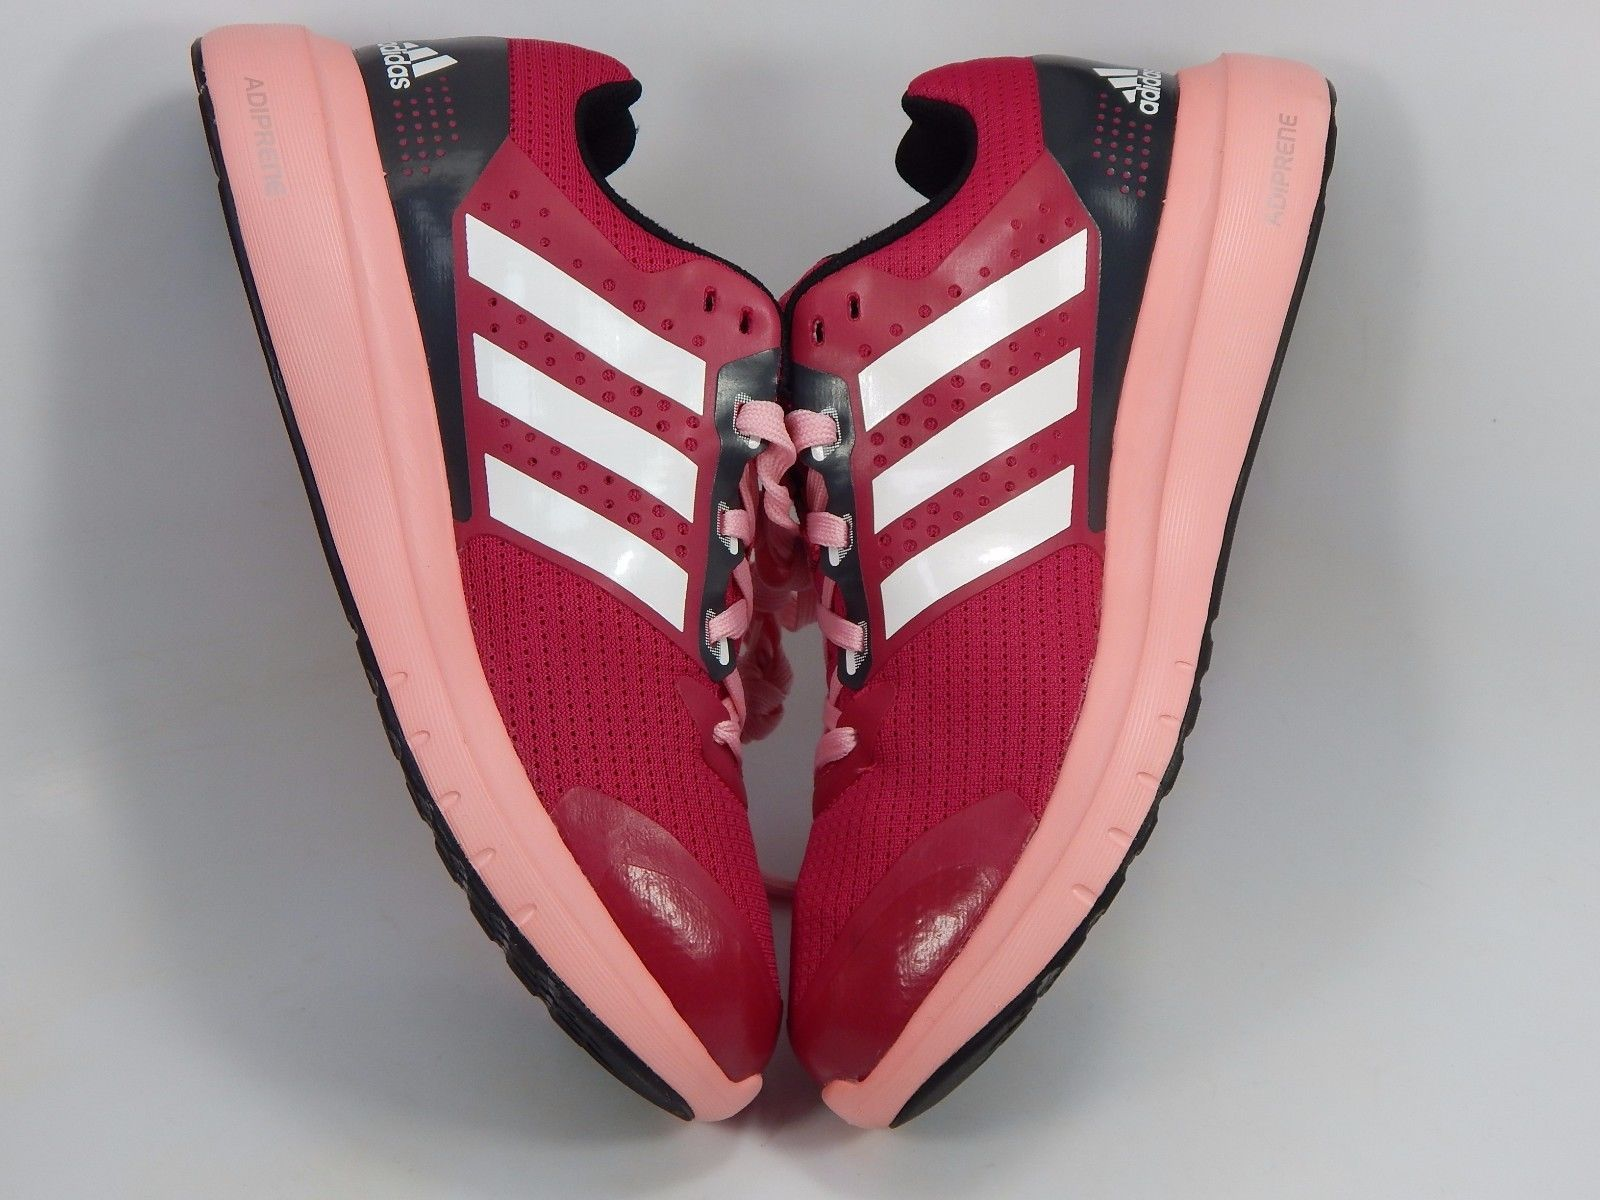 Adidas Duramo 7 Women's Shoes Size US 8.5 M (B) EU 40 2/3 Wine Purple B33561